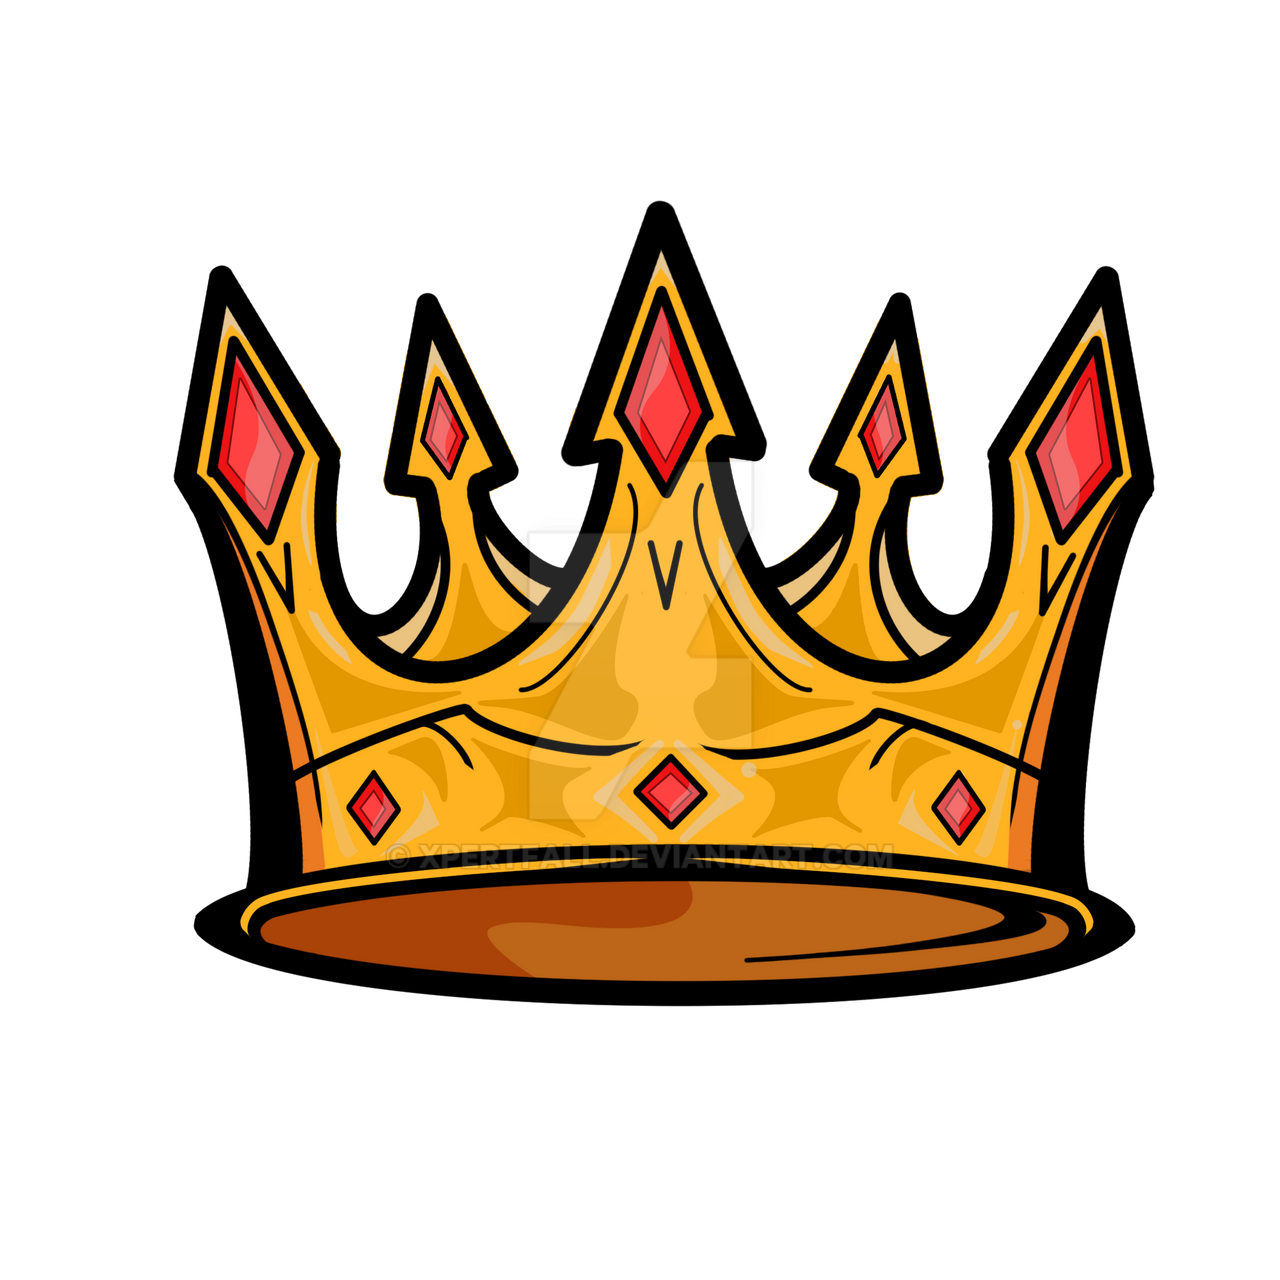 King's Crown by Xpertfall